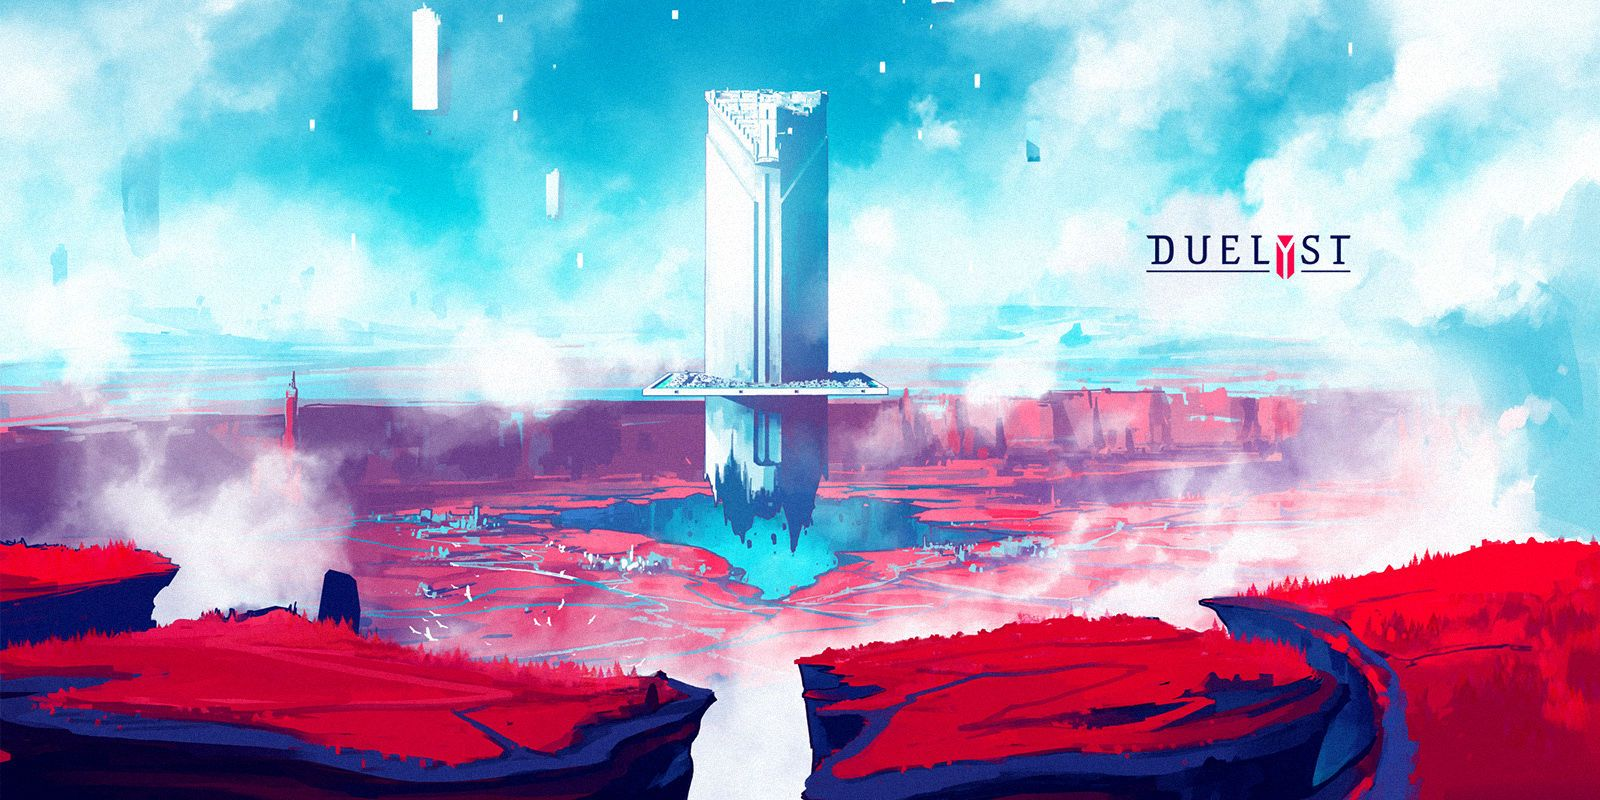 Anton Fadeev on DrawCrowd.com